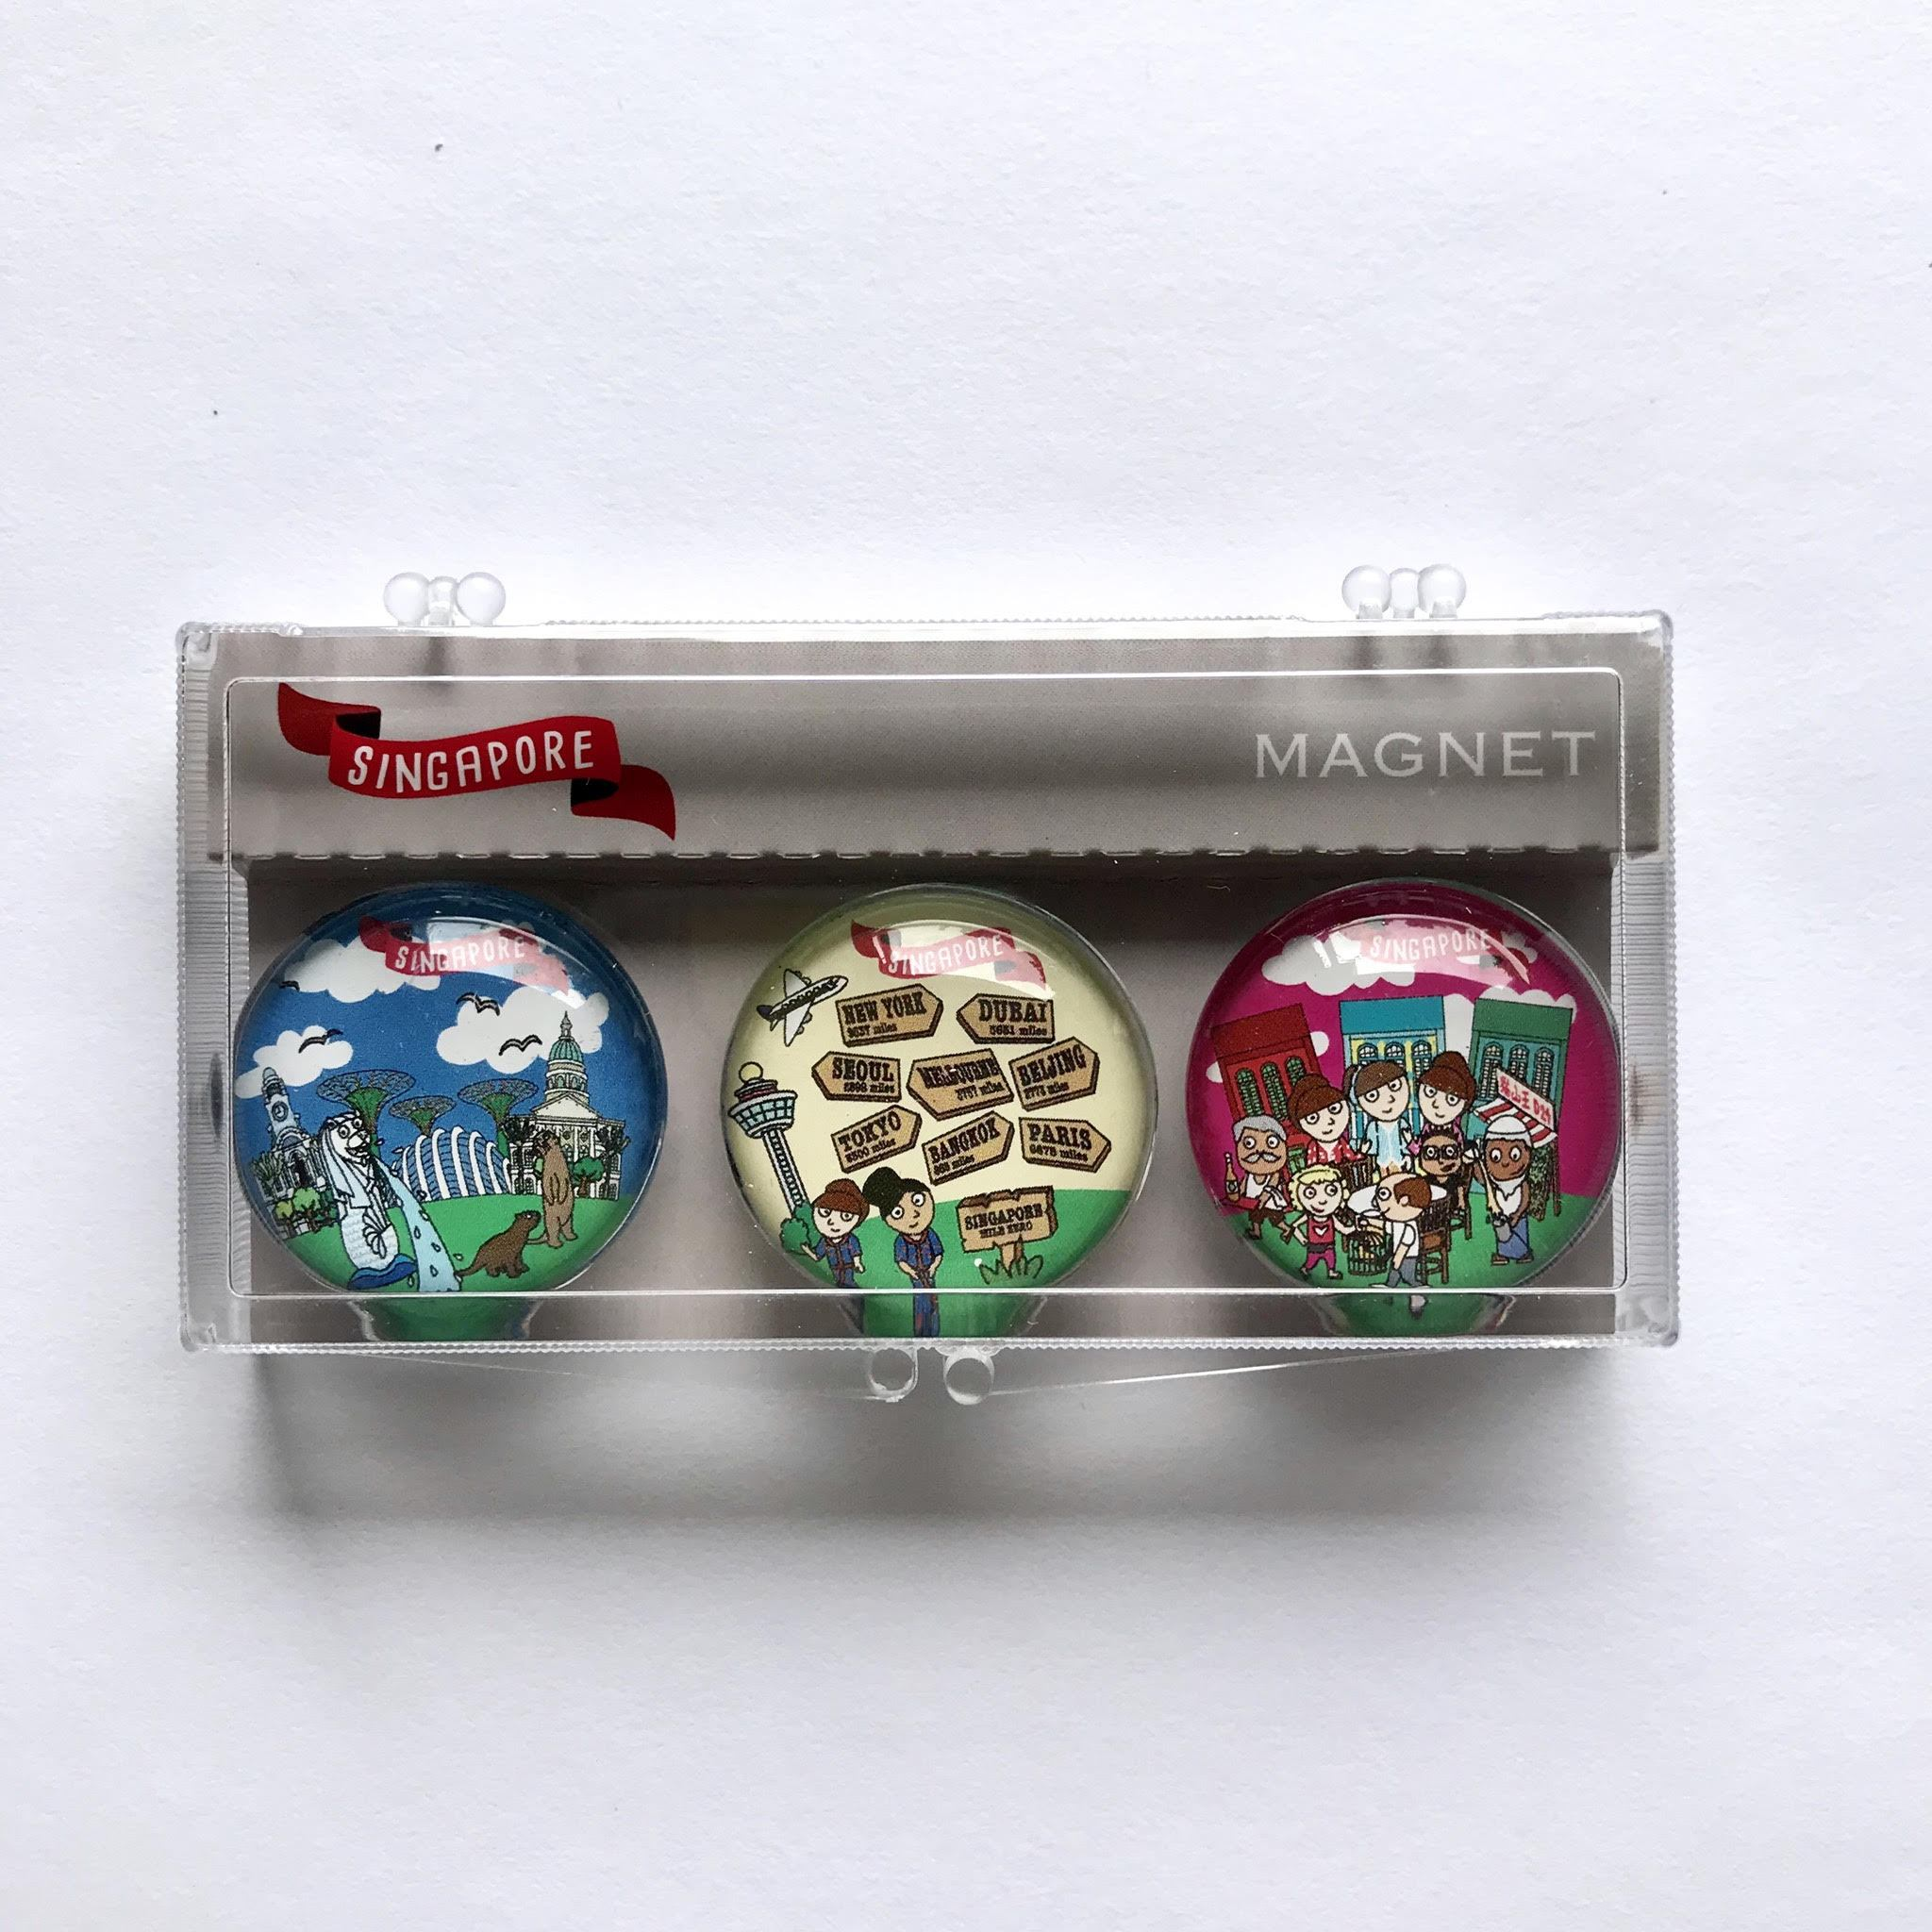 SG Magnet: Connected Metropolis - Local Magnets - Little Red Box - Naiise